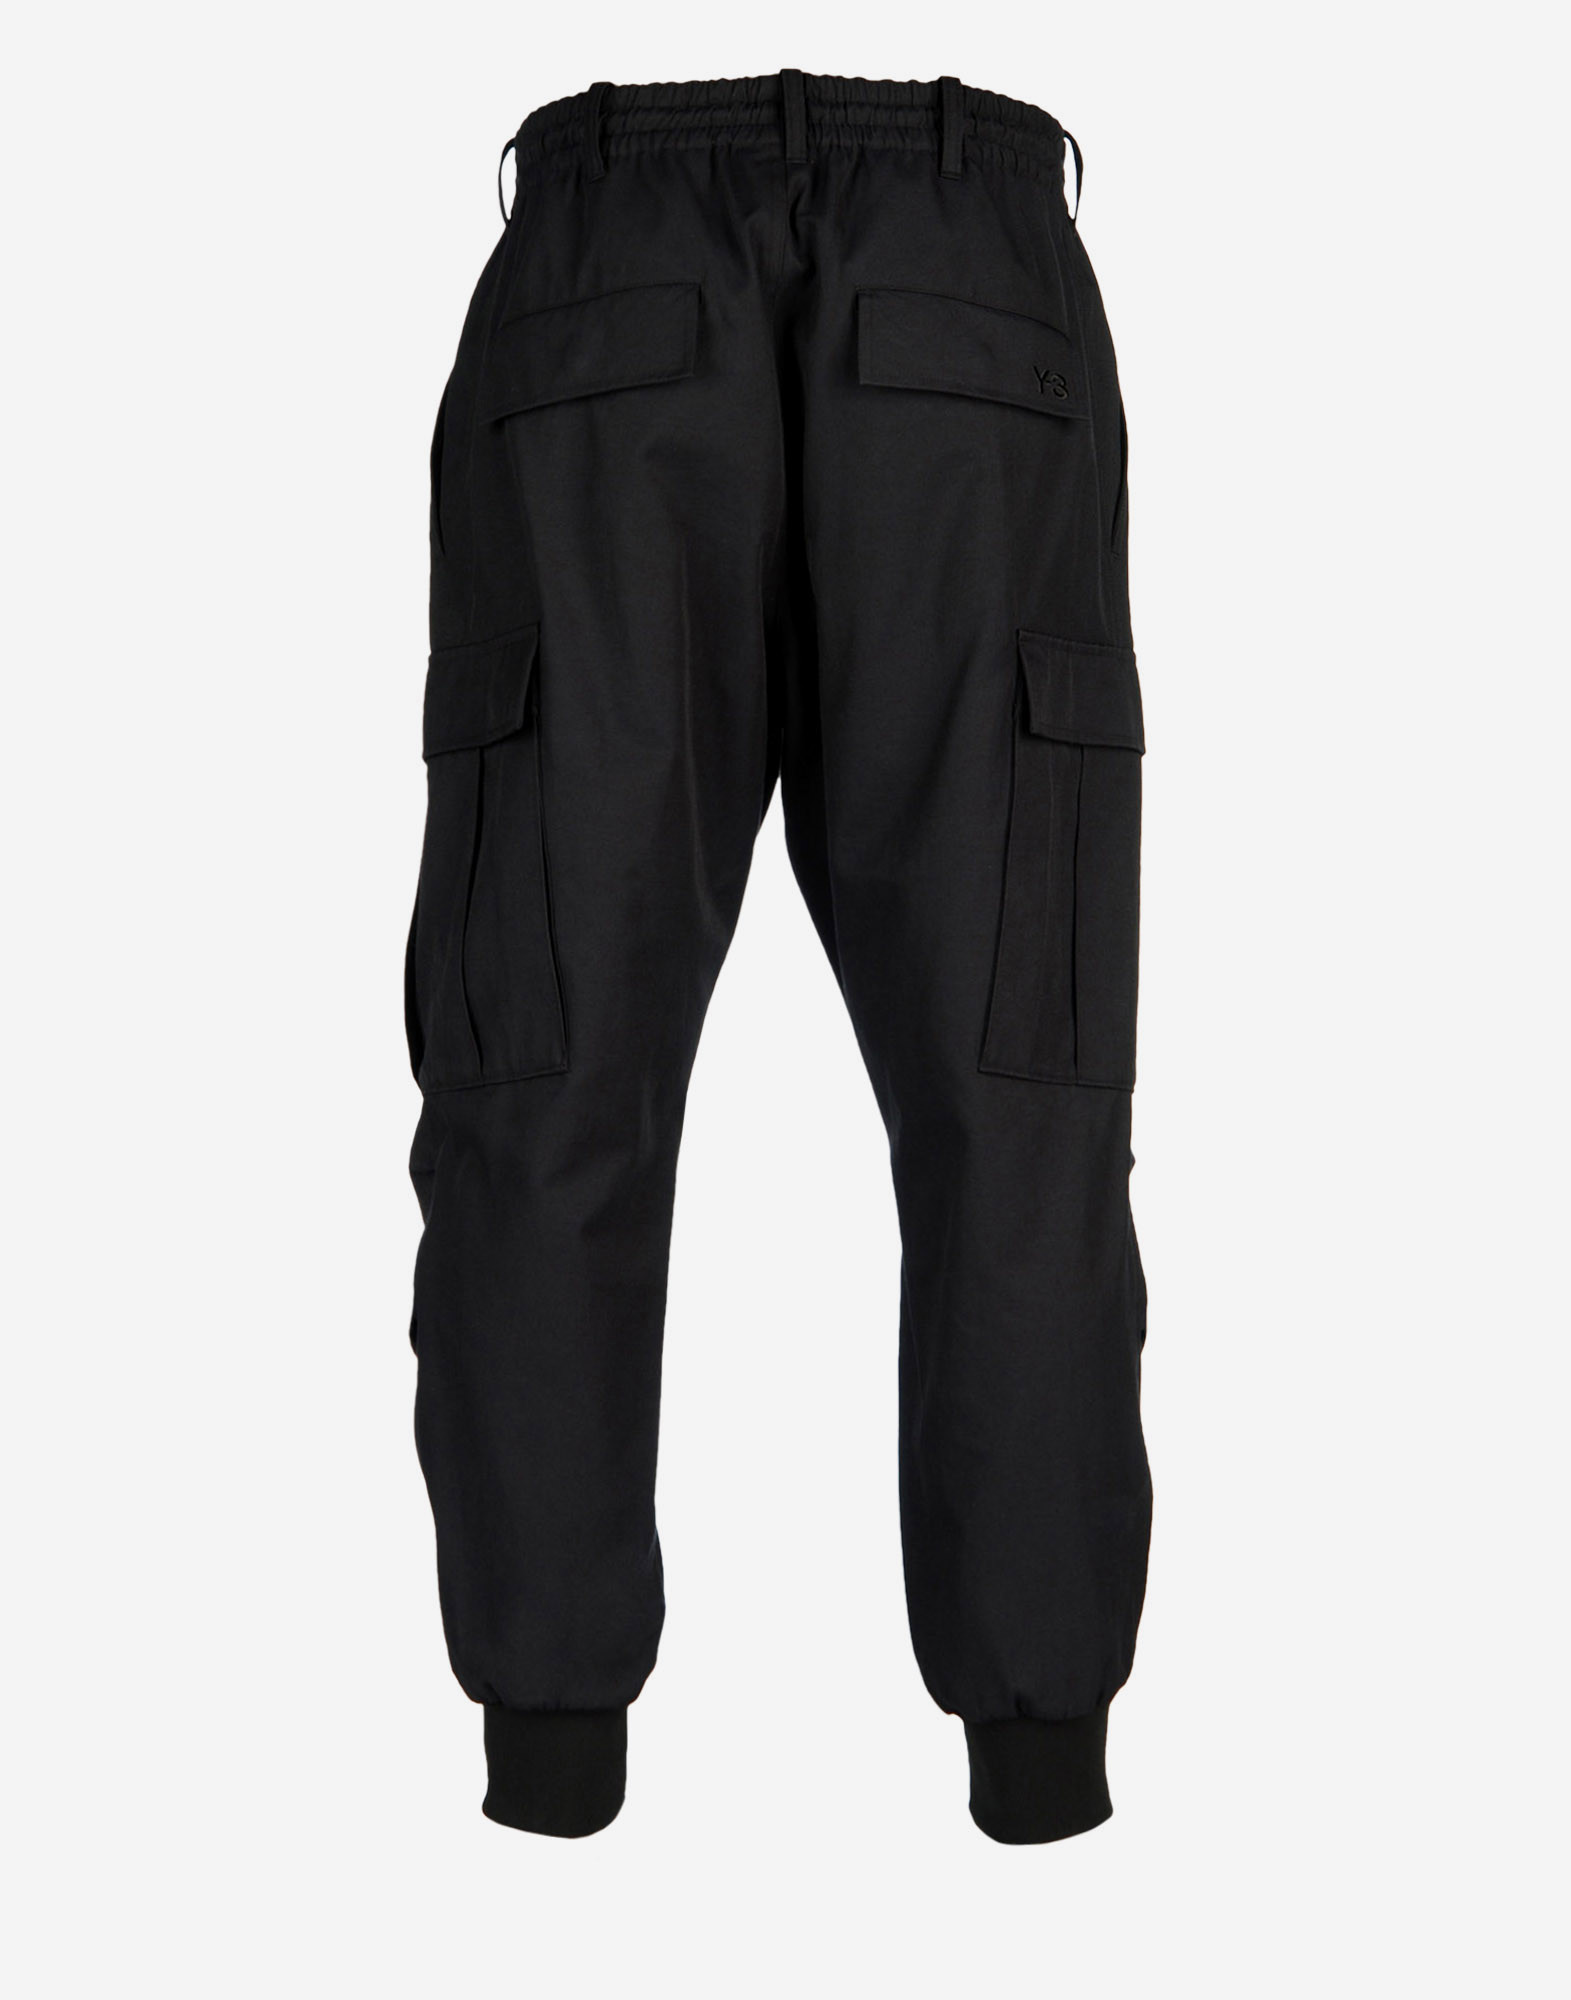 Free shipping parachute pants online store. Best parachute pants for sale. Cheap parachute pants with excellent quality and fast delivery. | tanzaniasafarisorvicos.ga